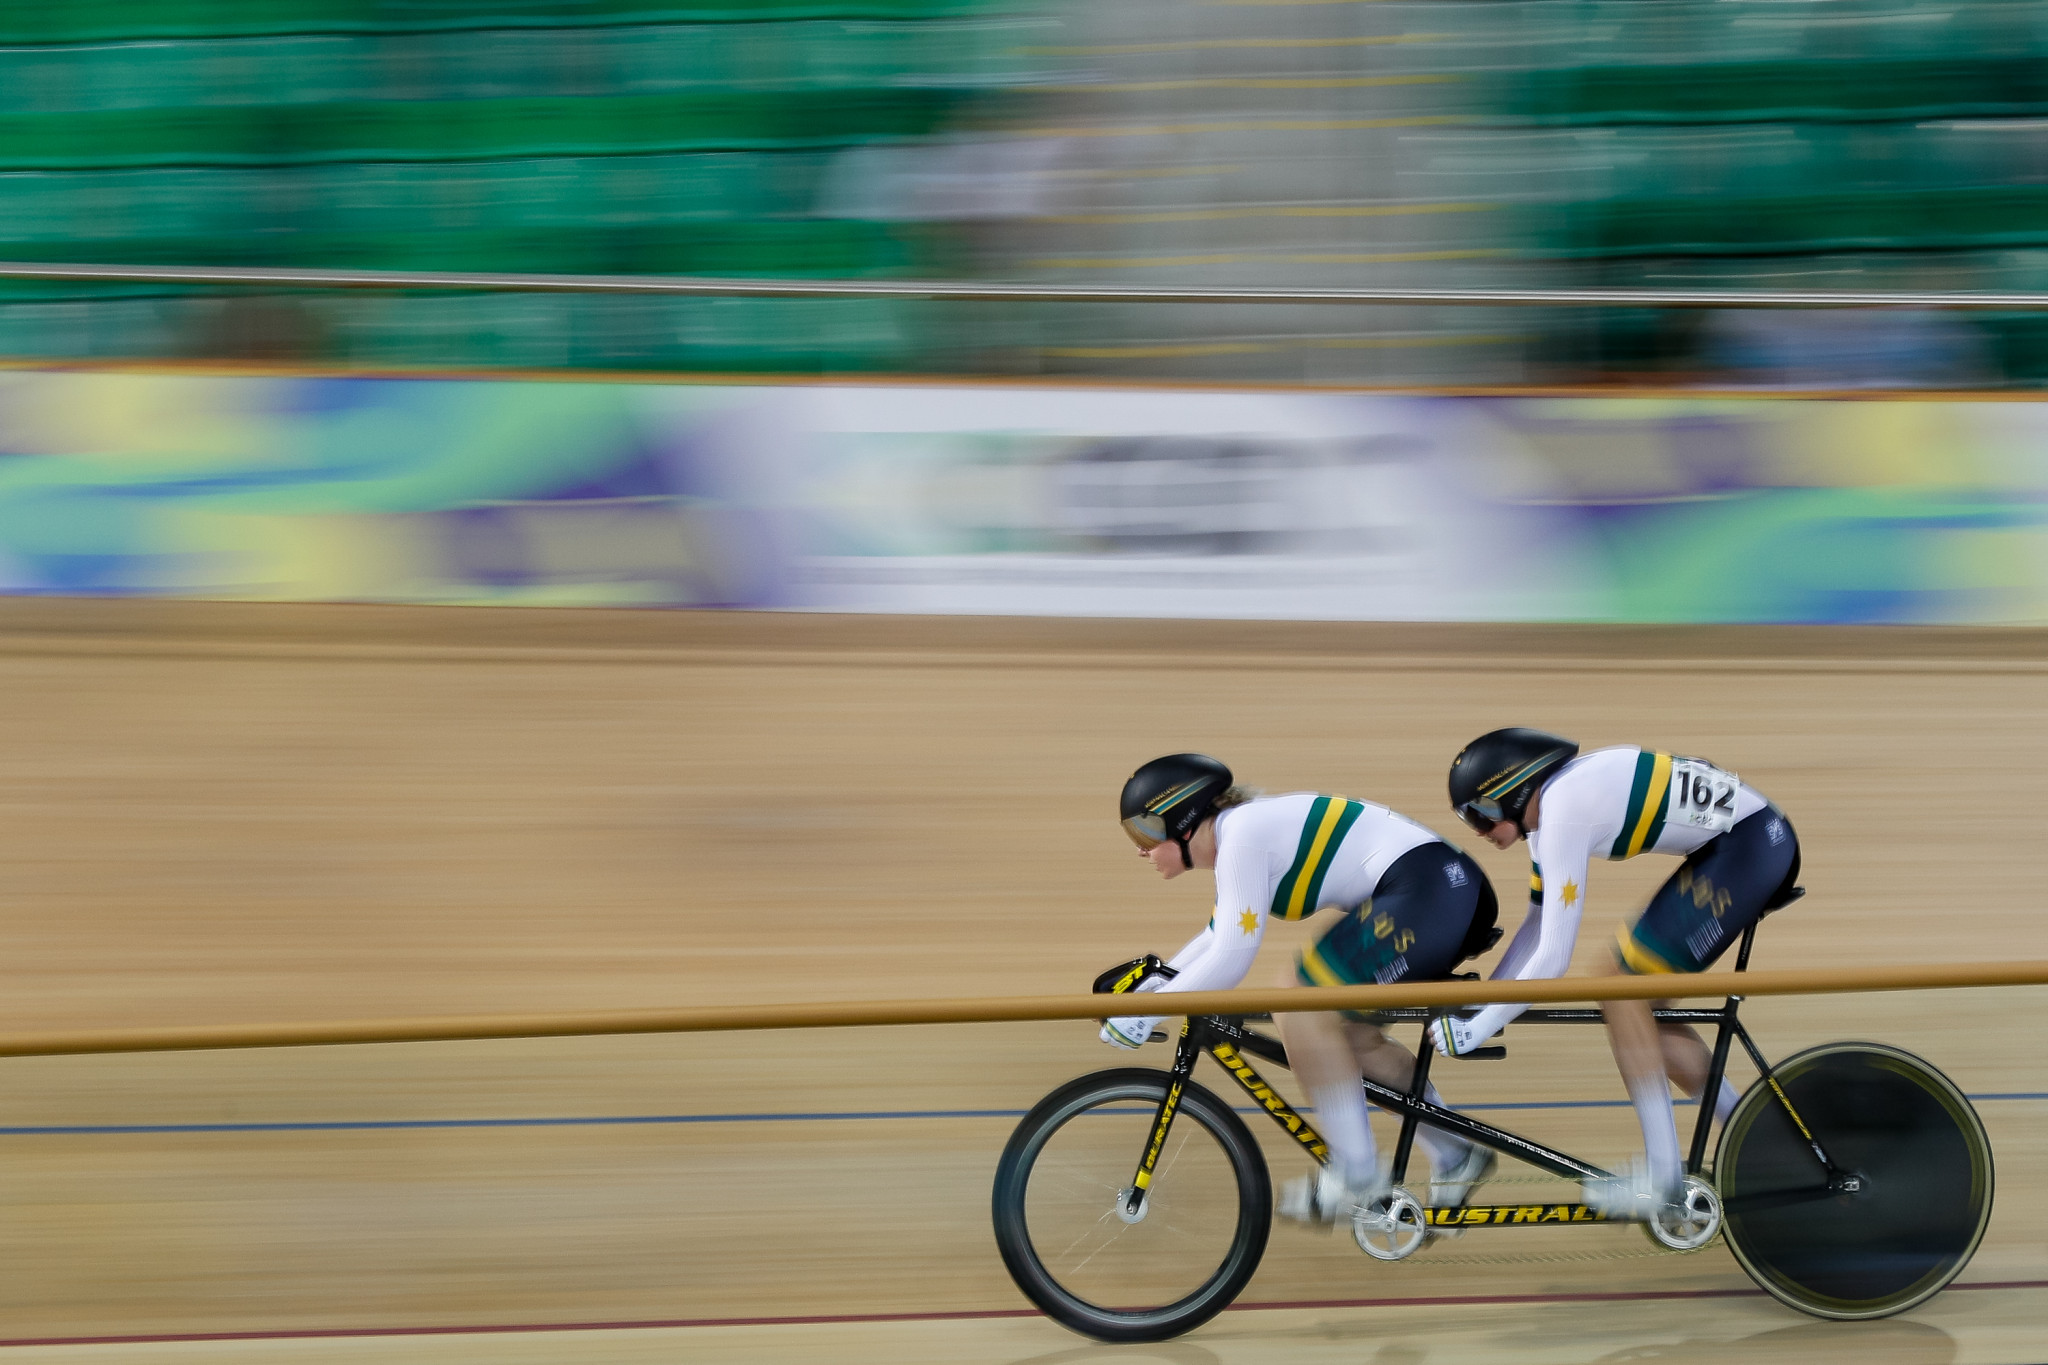 The AUD$60,000 pledge will go towards Paralympics Australia's travel and accommodation costs at Tokyo 2020 ©Getty Images